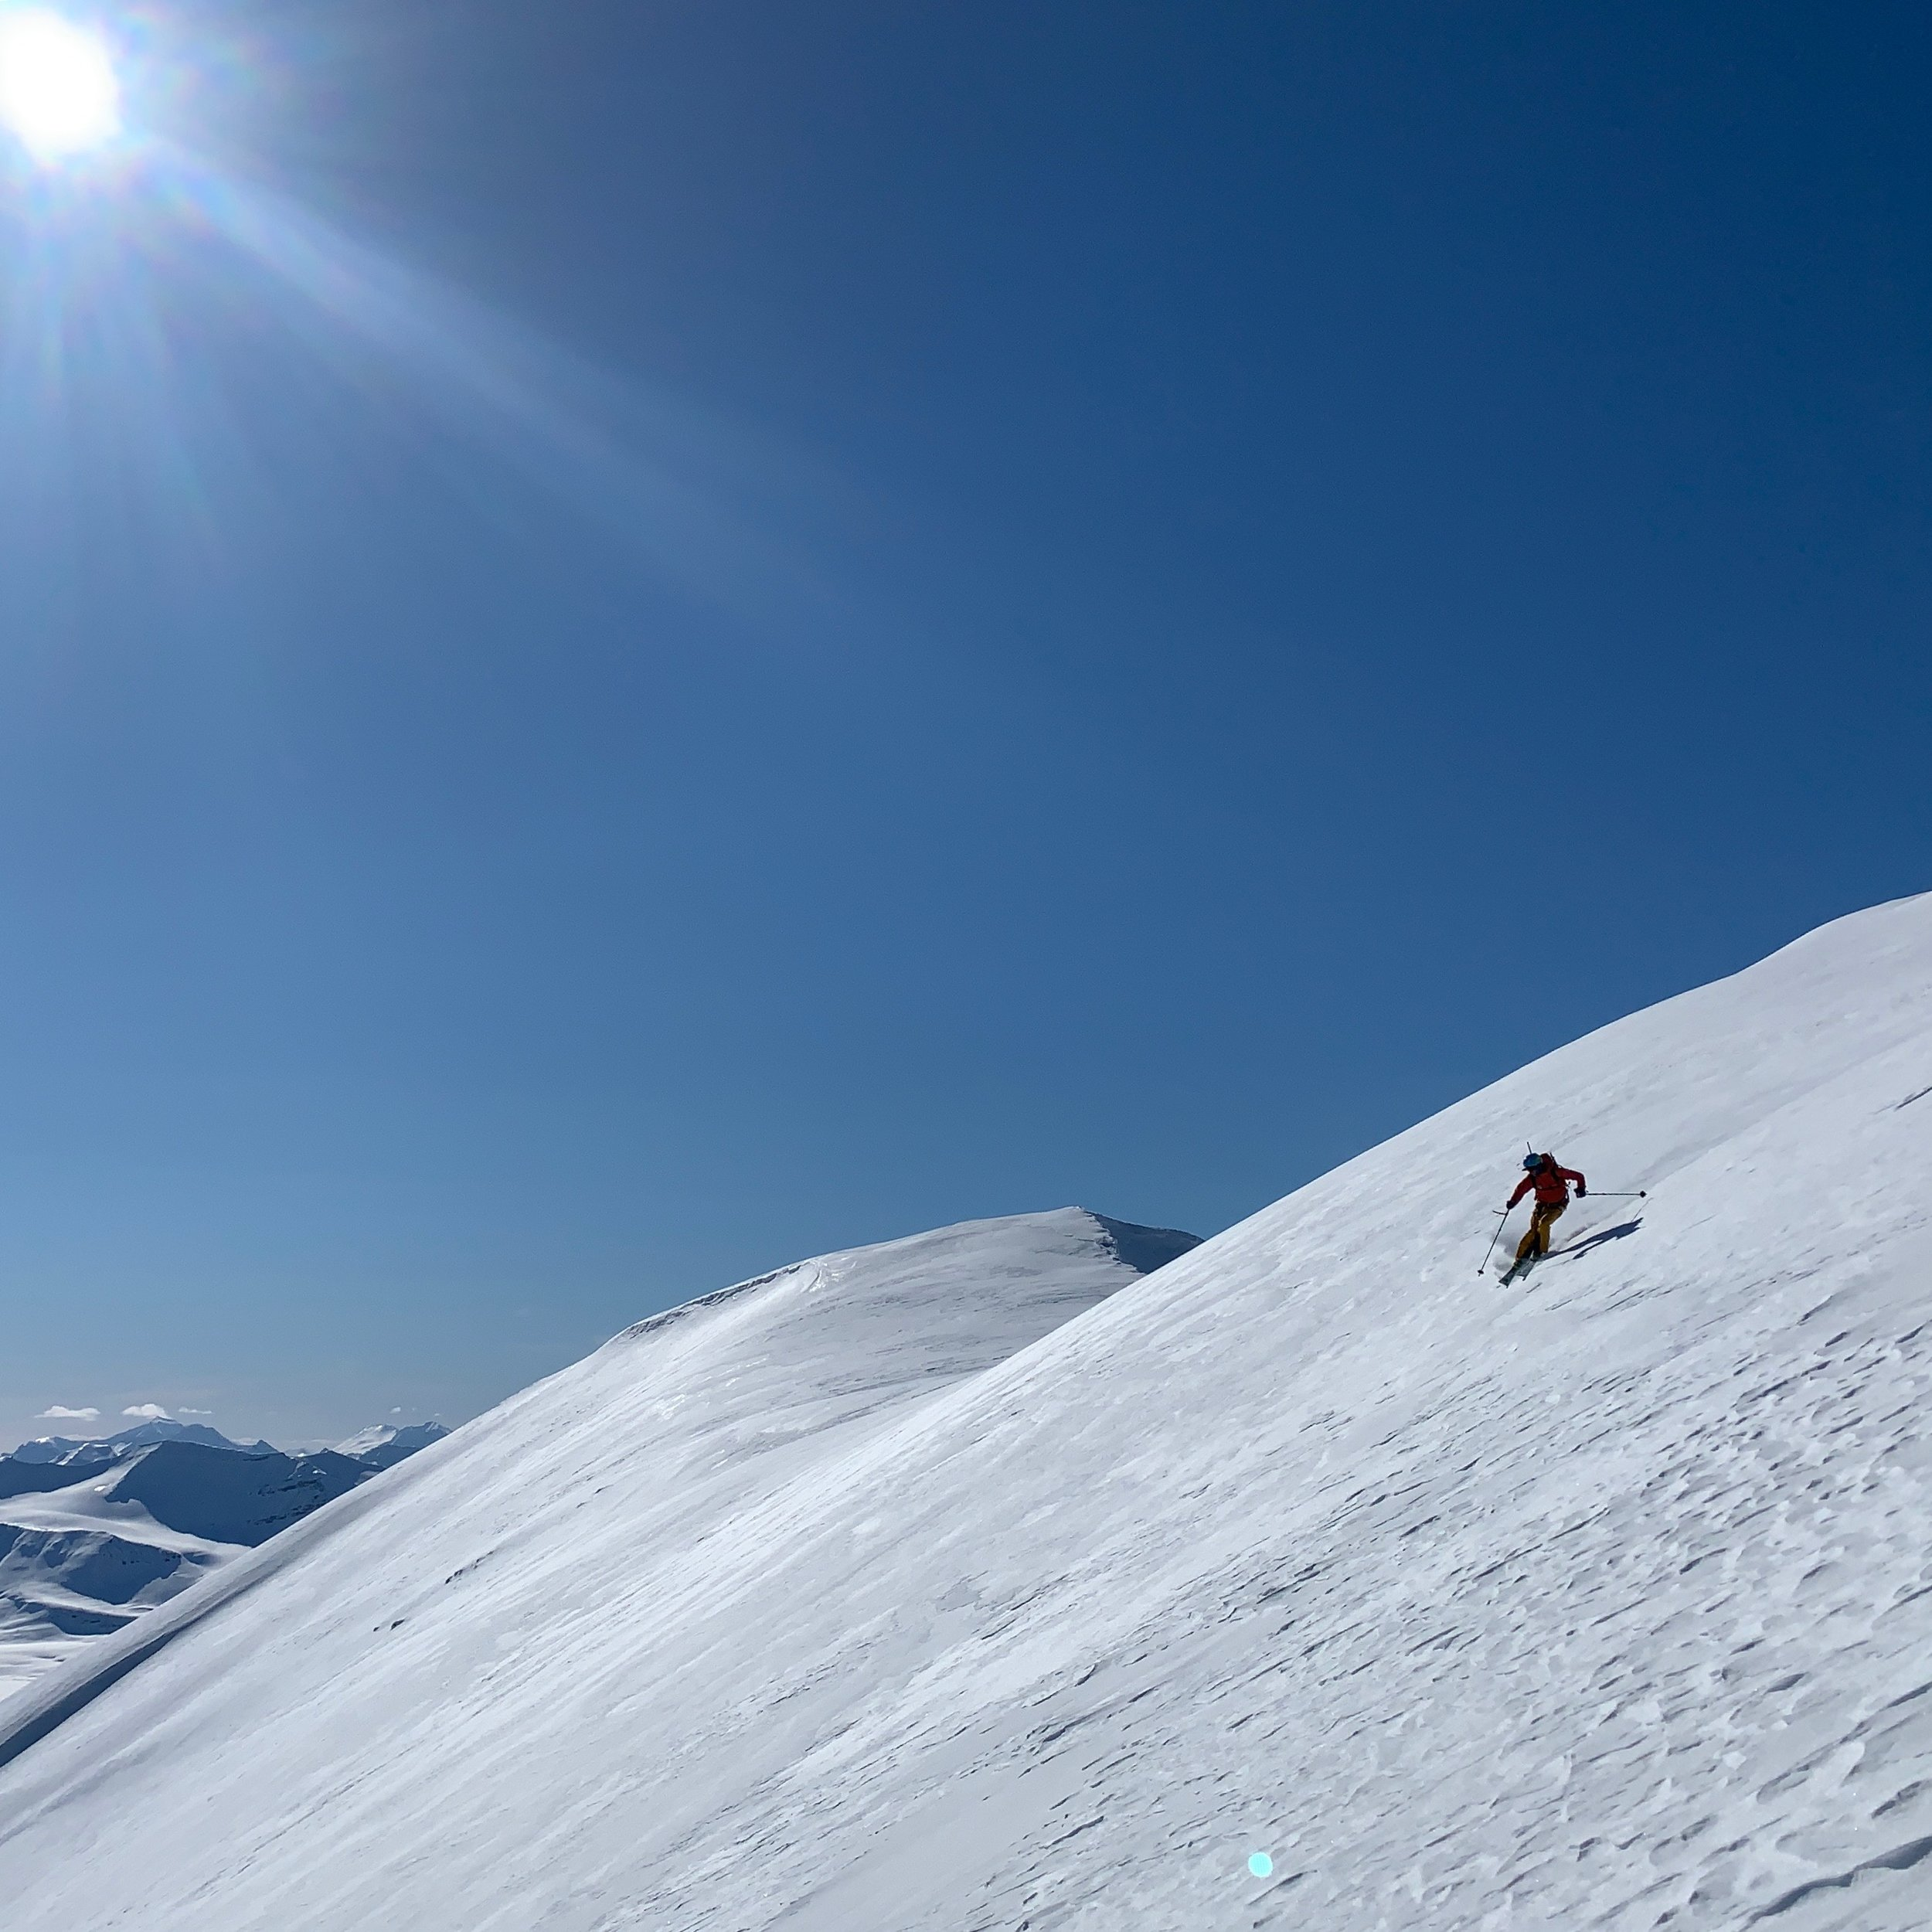 Enjoying forgiving guiding conditions: epic views, soft corn, and phenomenal skiing!